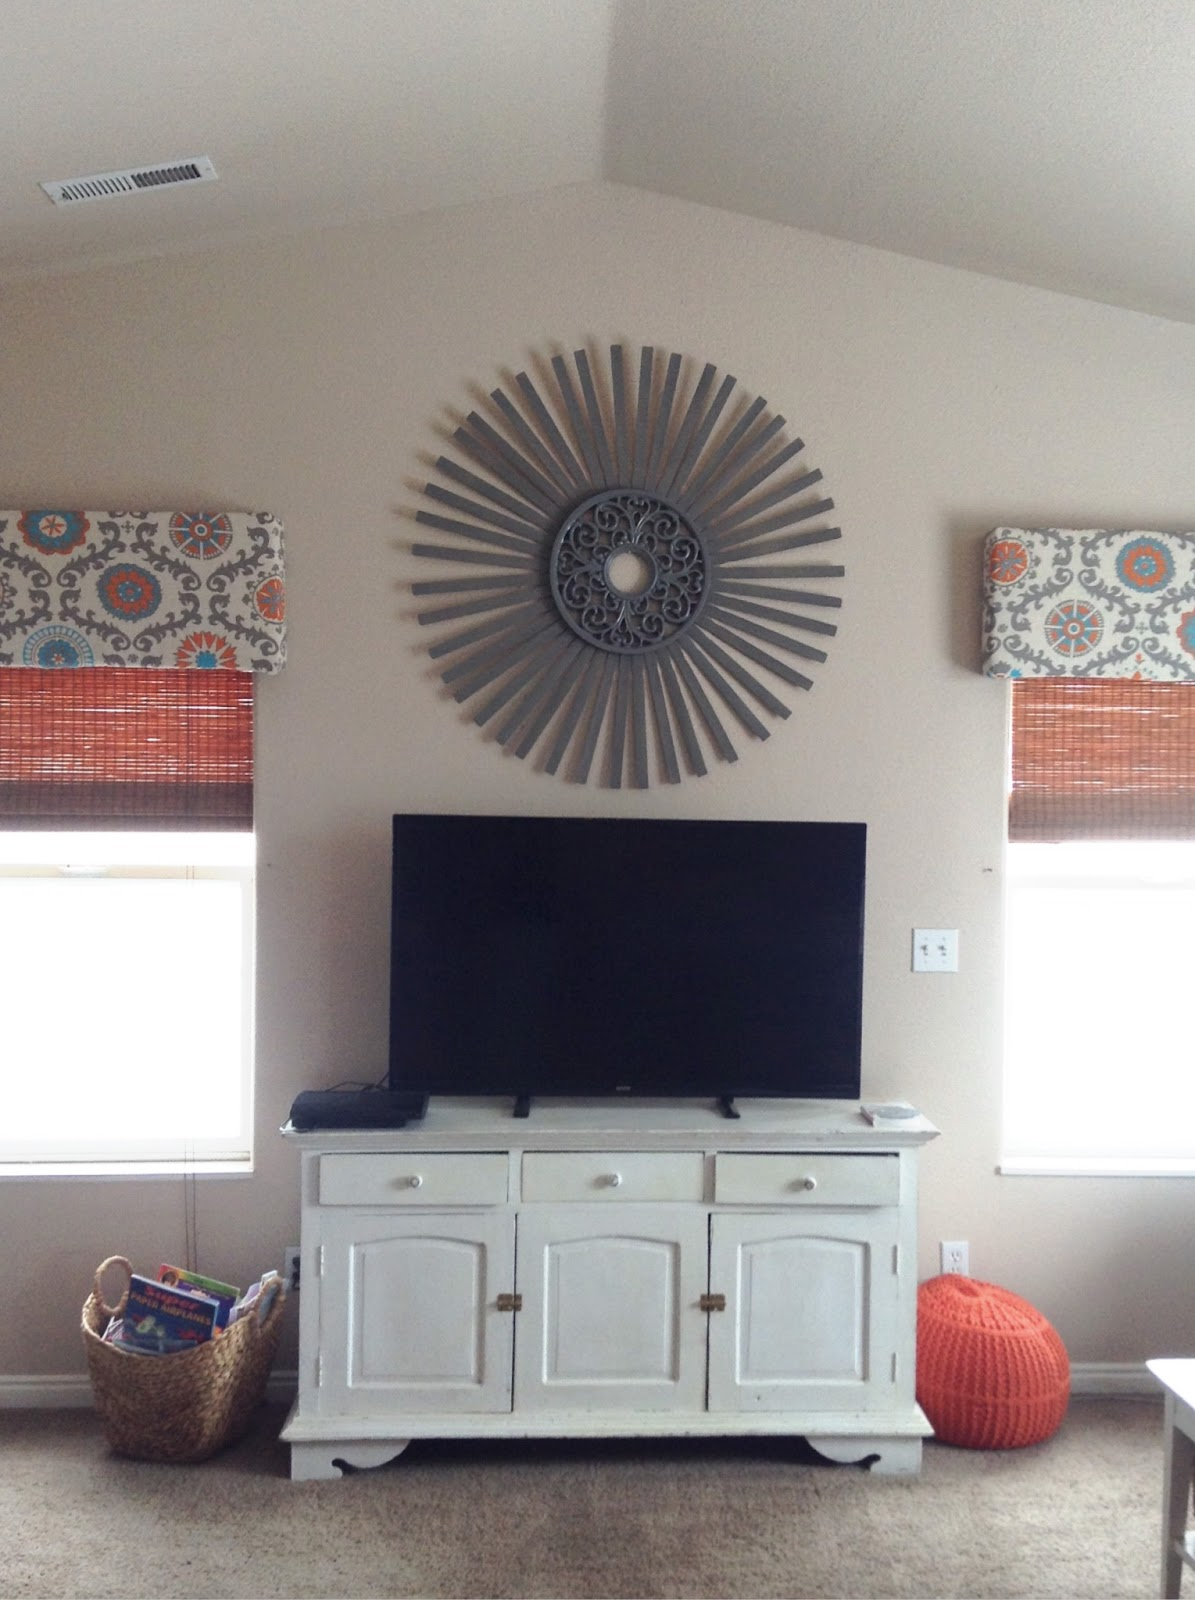 Family Room Makeover reveal- Sunburst DIY